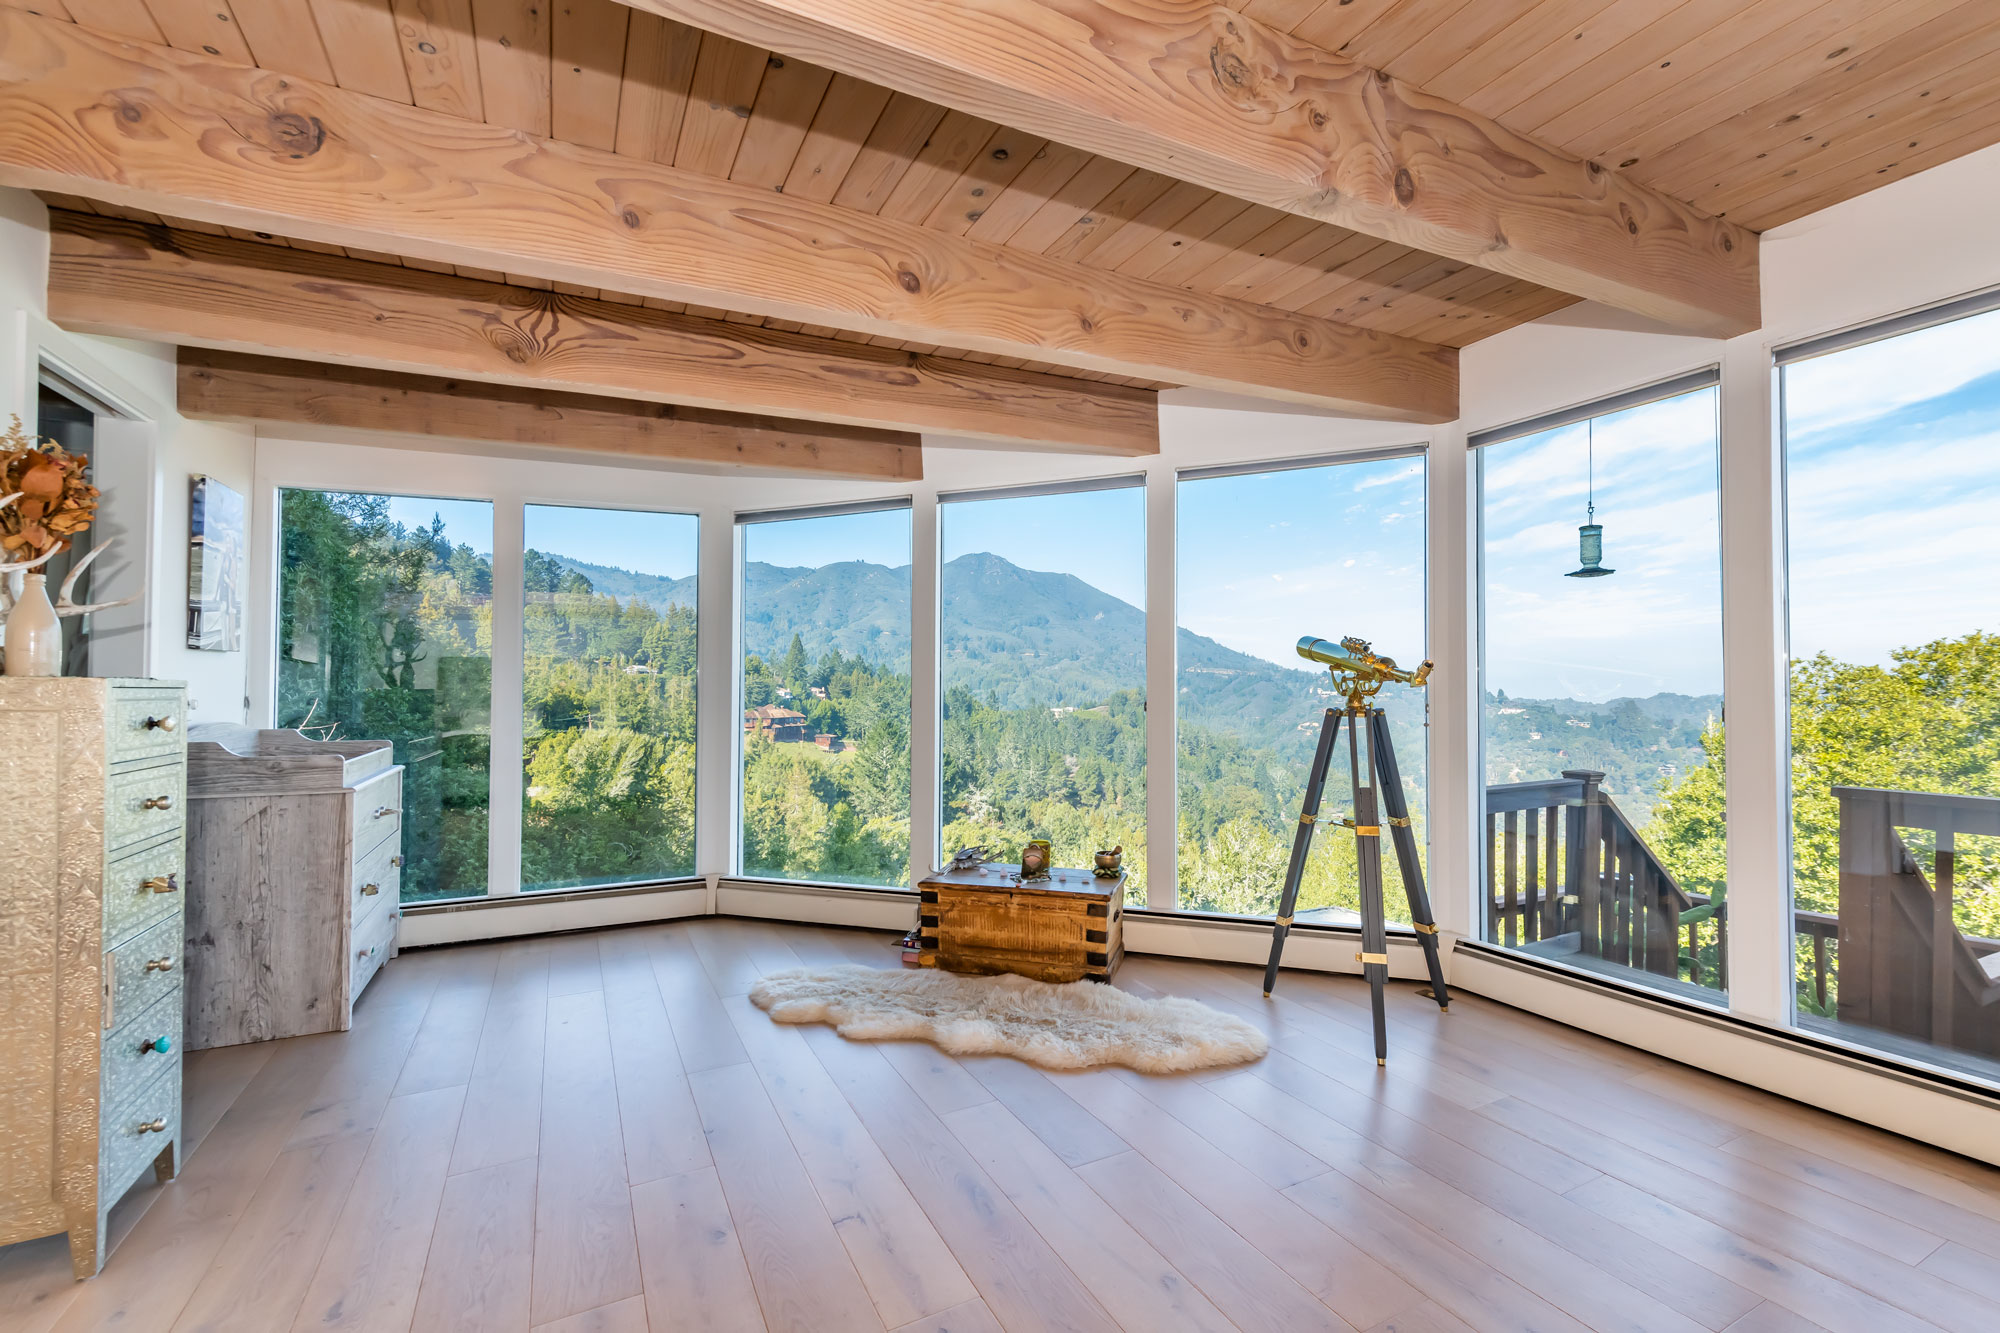 $1,735,000 - Seller | Co-Listed with Derek Jackson178 Madera Way, Mill Valley